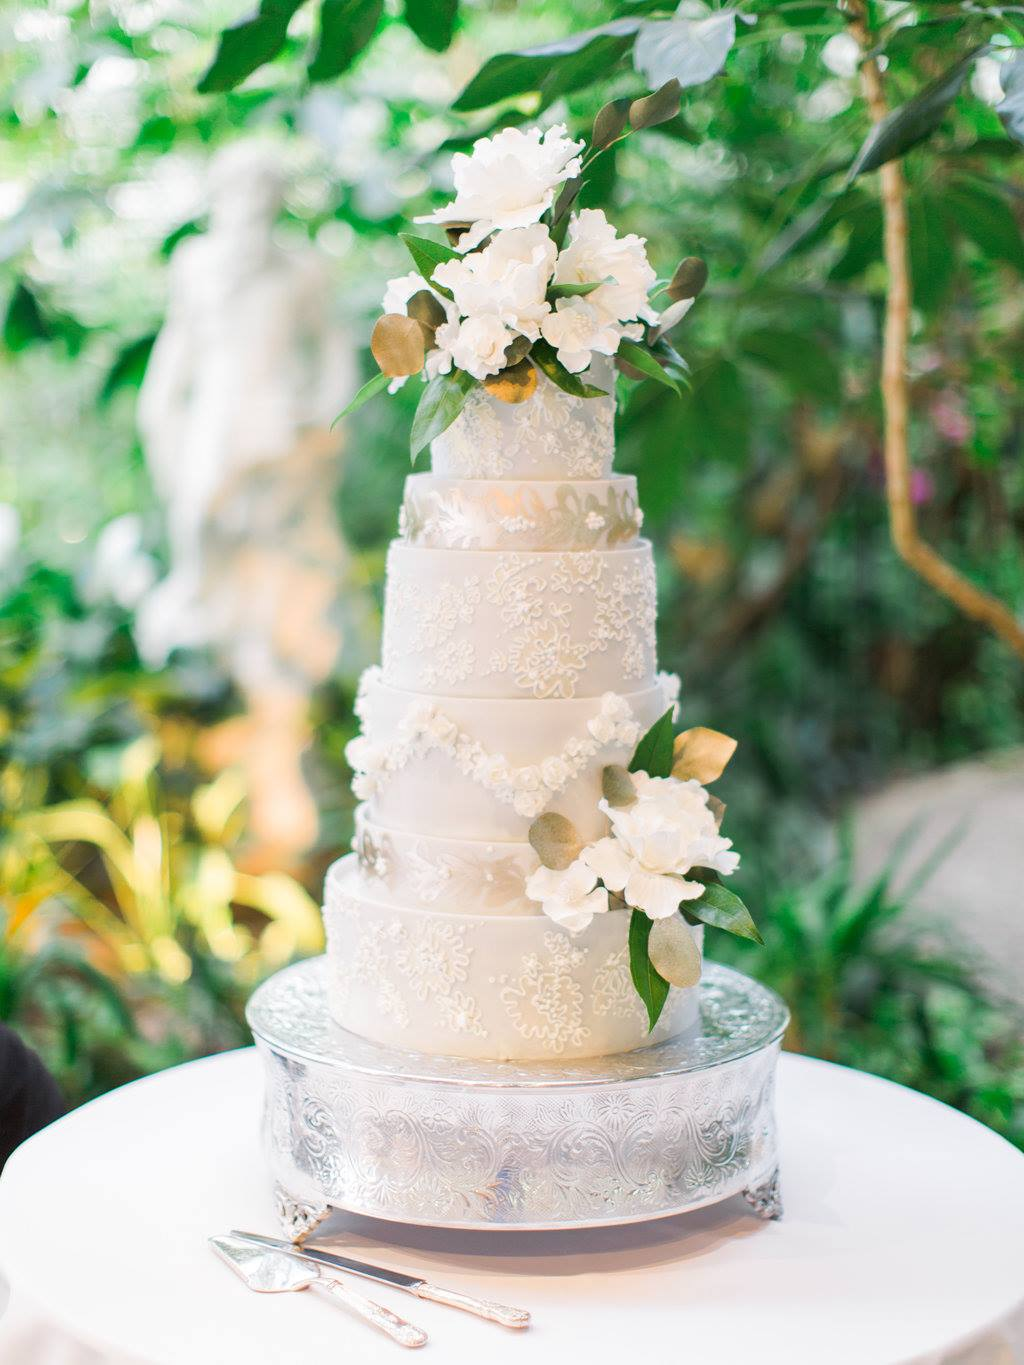 12 Things Your Wedding Cake Designer Wishes You Knew